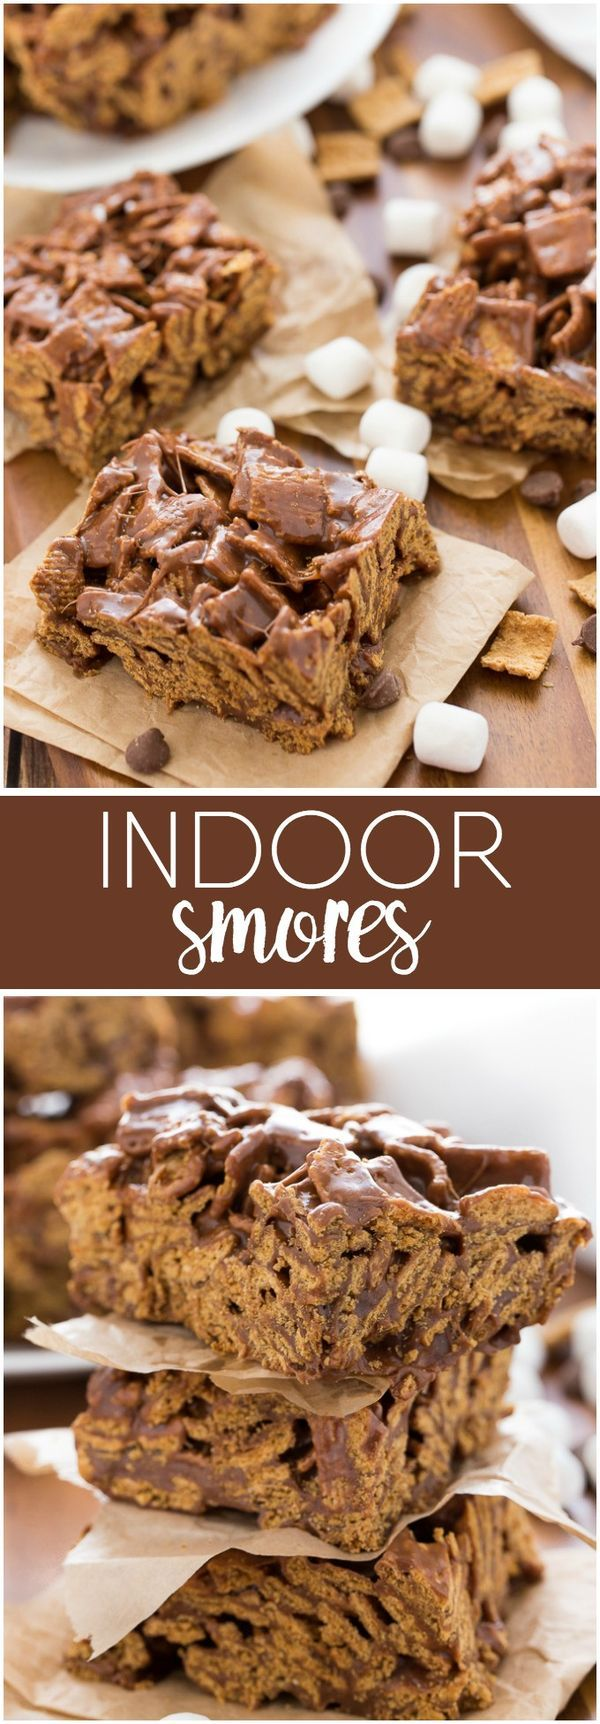 Indoor S'mores - This easy, no-bake dessert has all the flavours of a classic s'mores, but can be made in the cool, comfort of home. No campfire needed!